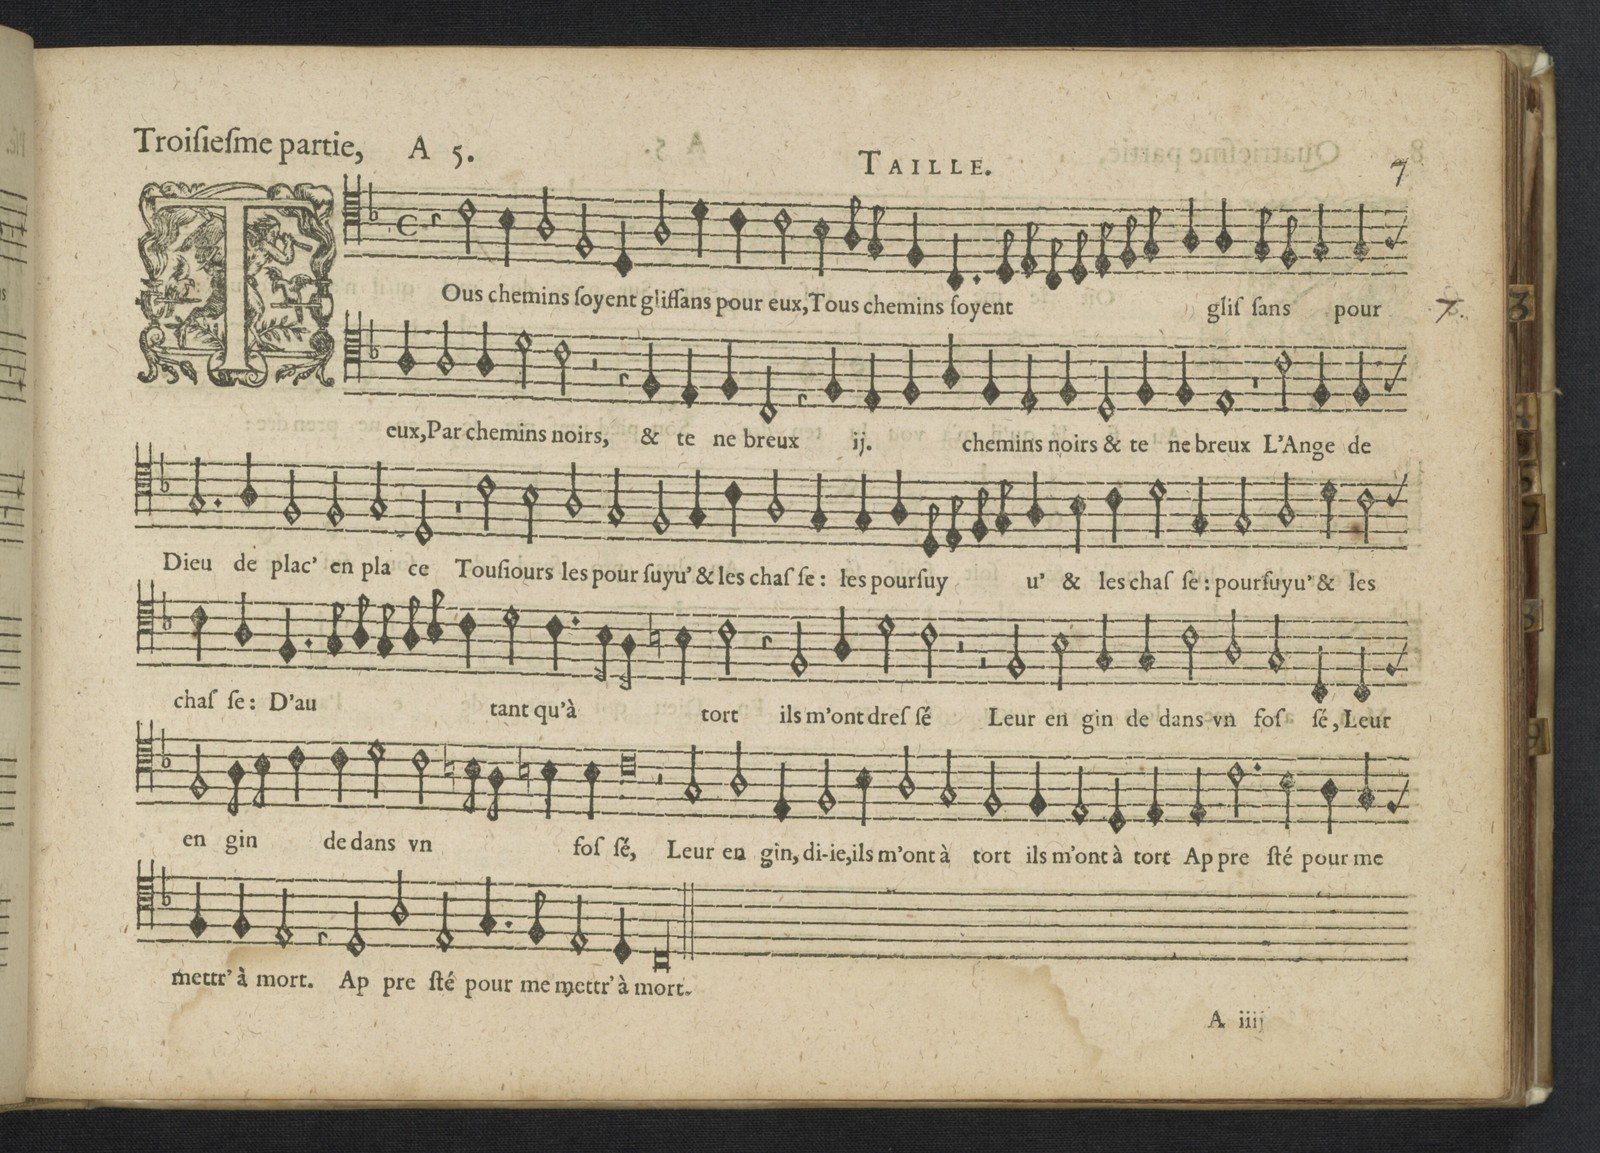 Tenor [Pseaumes de David and sacred part songs from Claude Le Jeune, Jan Peiterszoon Sweelinck, Paschal de L'Estocart, Orlando di Lasso, Jan Tollius in the 16th and the early17th century]